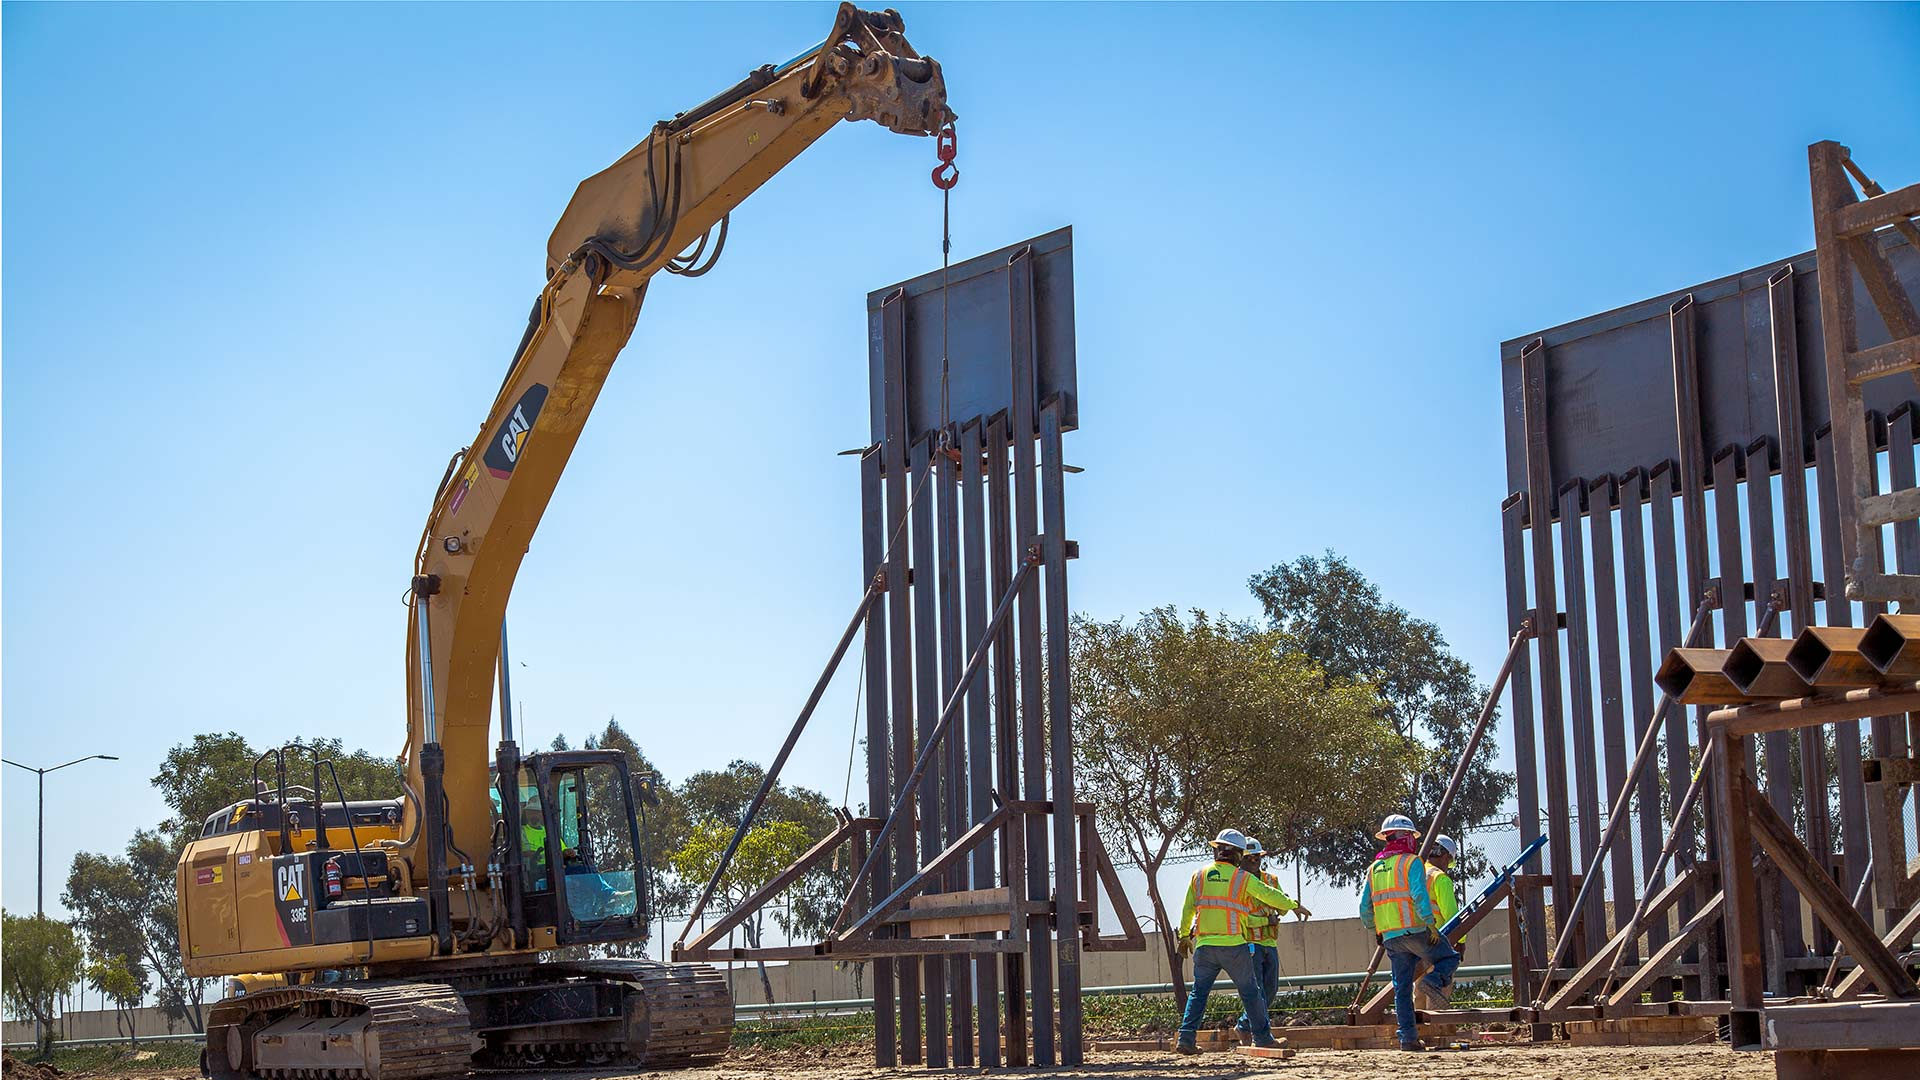 New border barrier construction in the Chula Vista Area of Responsibility in June 2018, according to Customs and Border Protection.